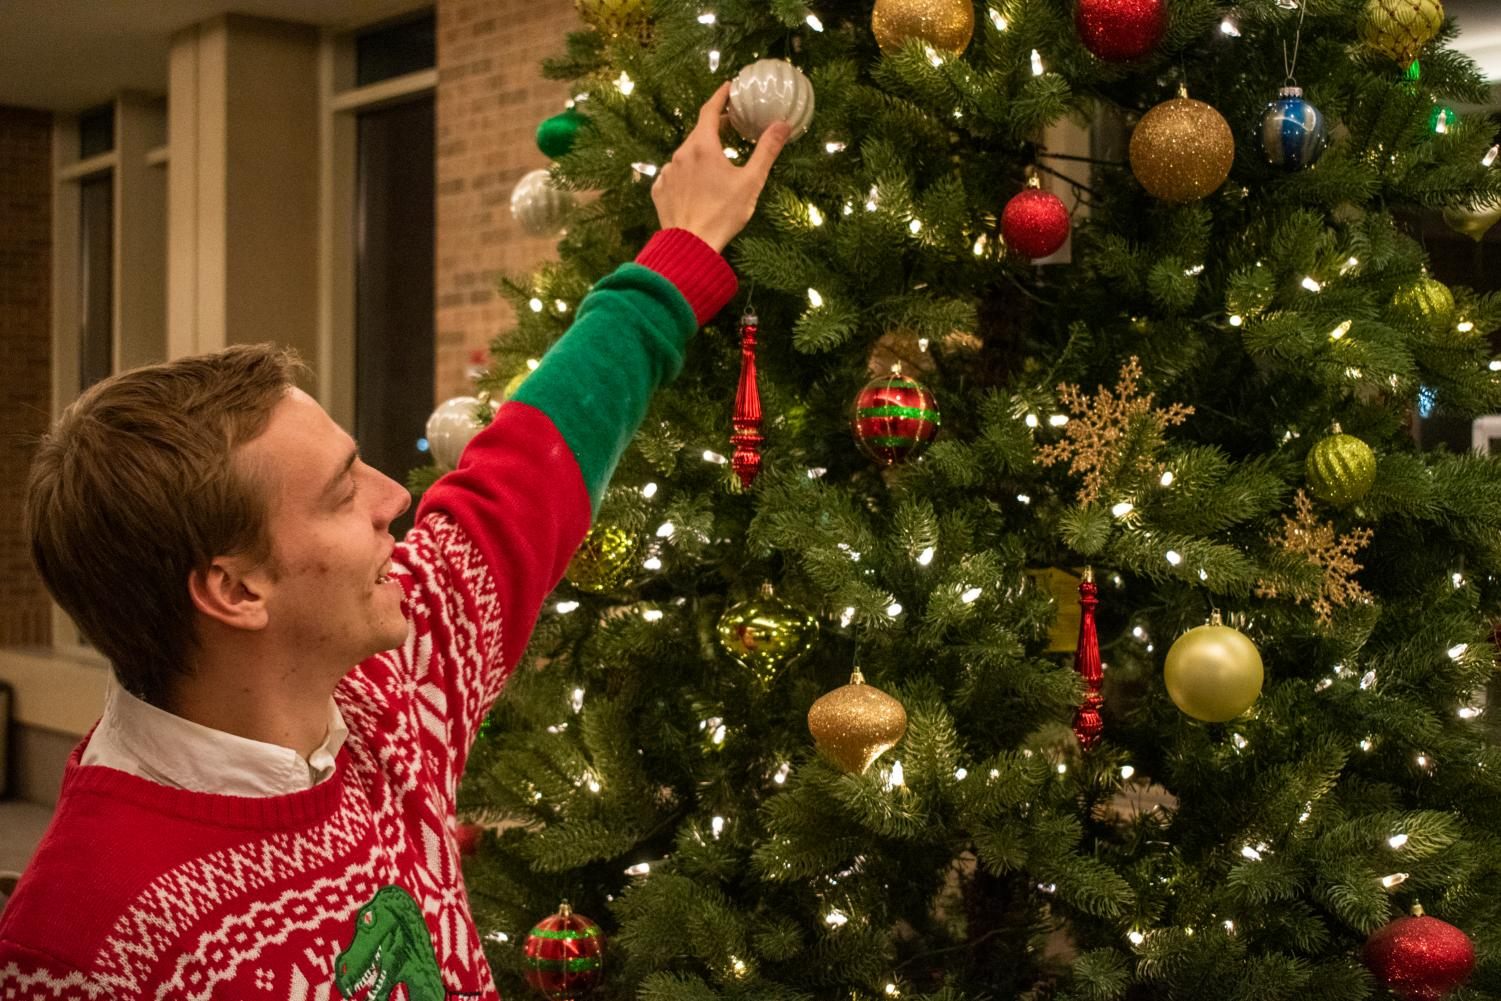 Andrew Fairbank, a junior in the College of Engineering, puts an ornament on a Christmas tree.